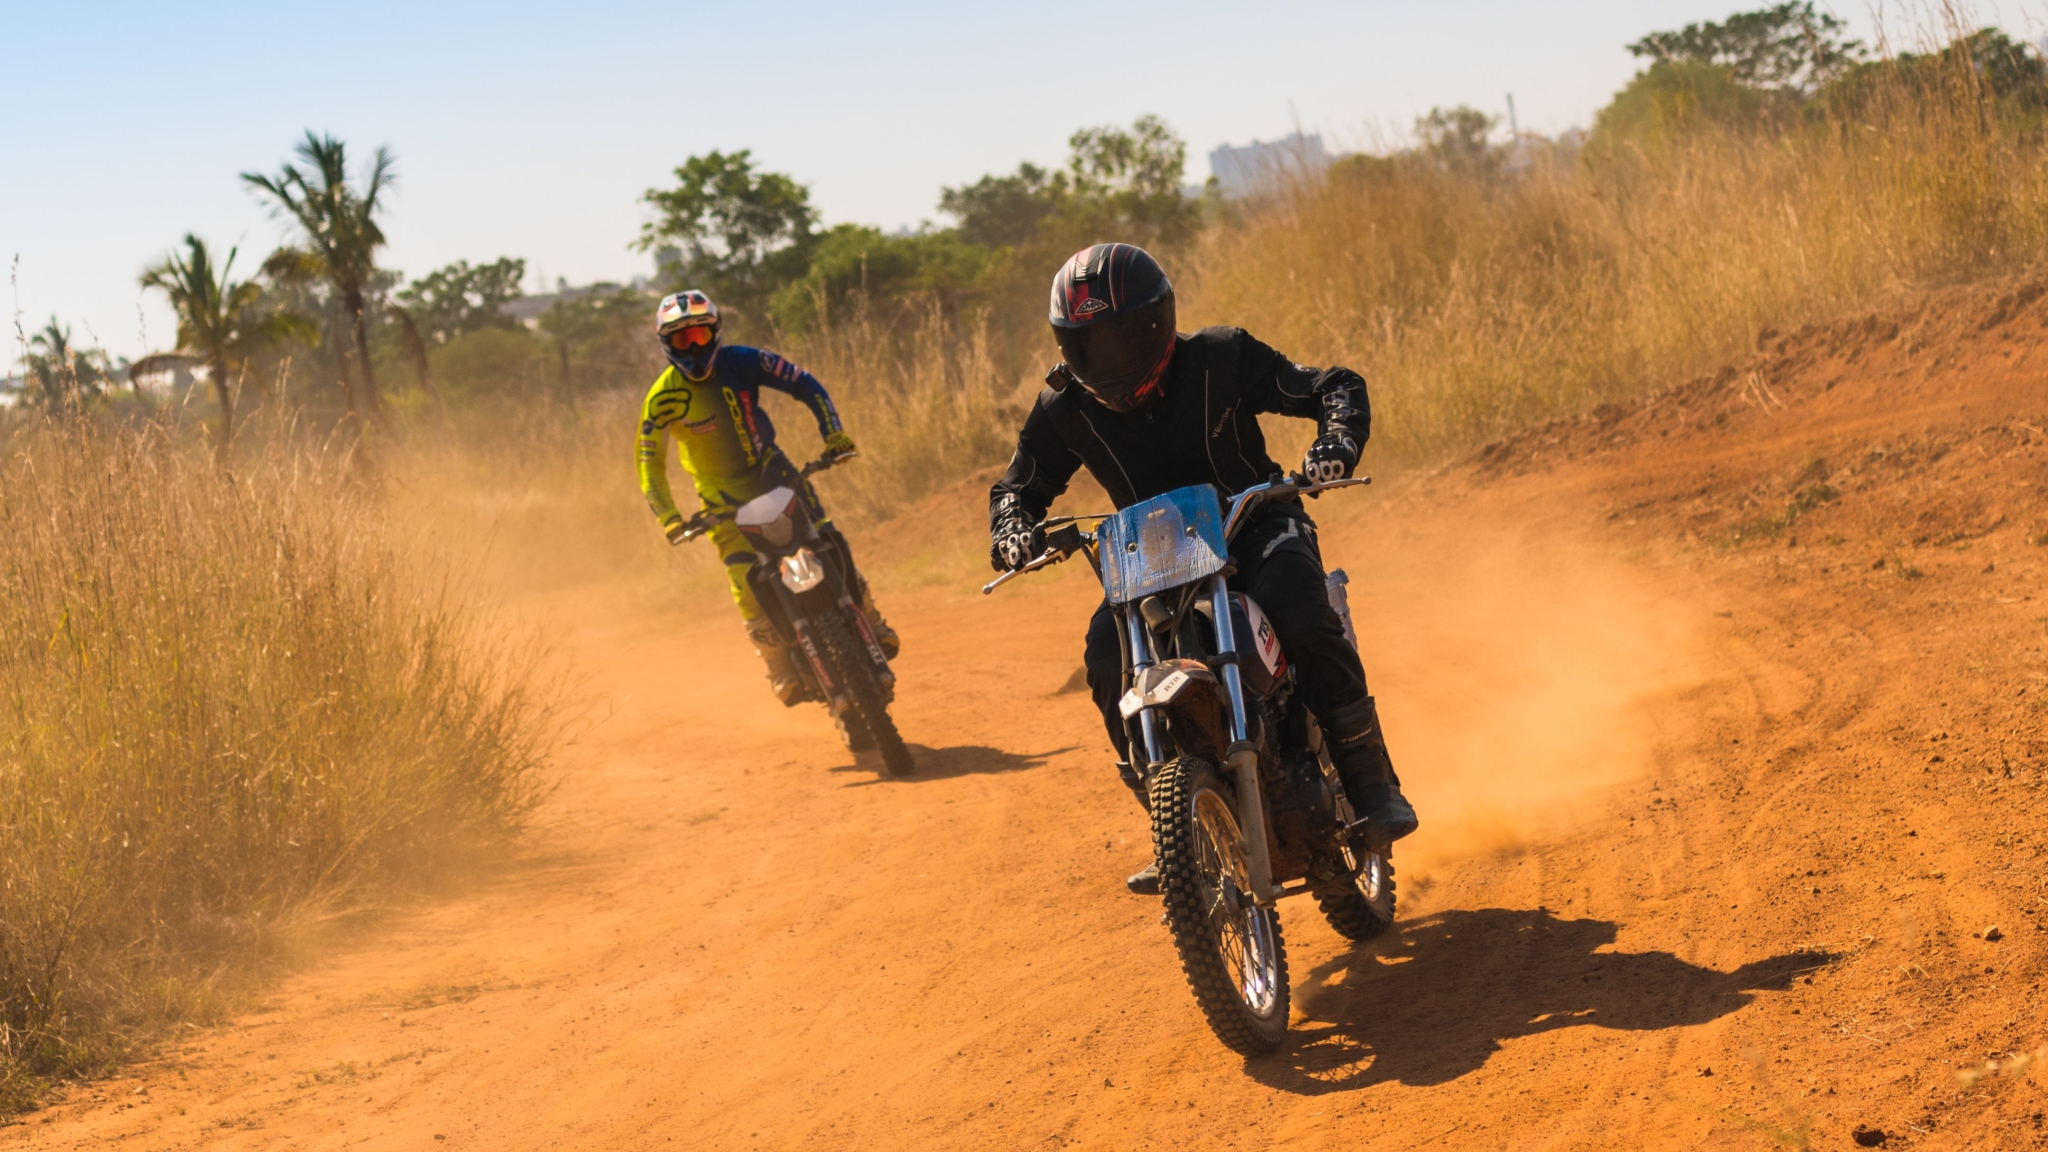 Learning to Ride Off-Road With the Pros: Skills, Drills & Basics